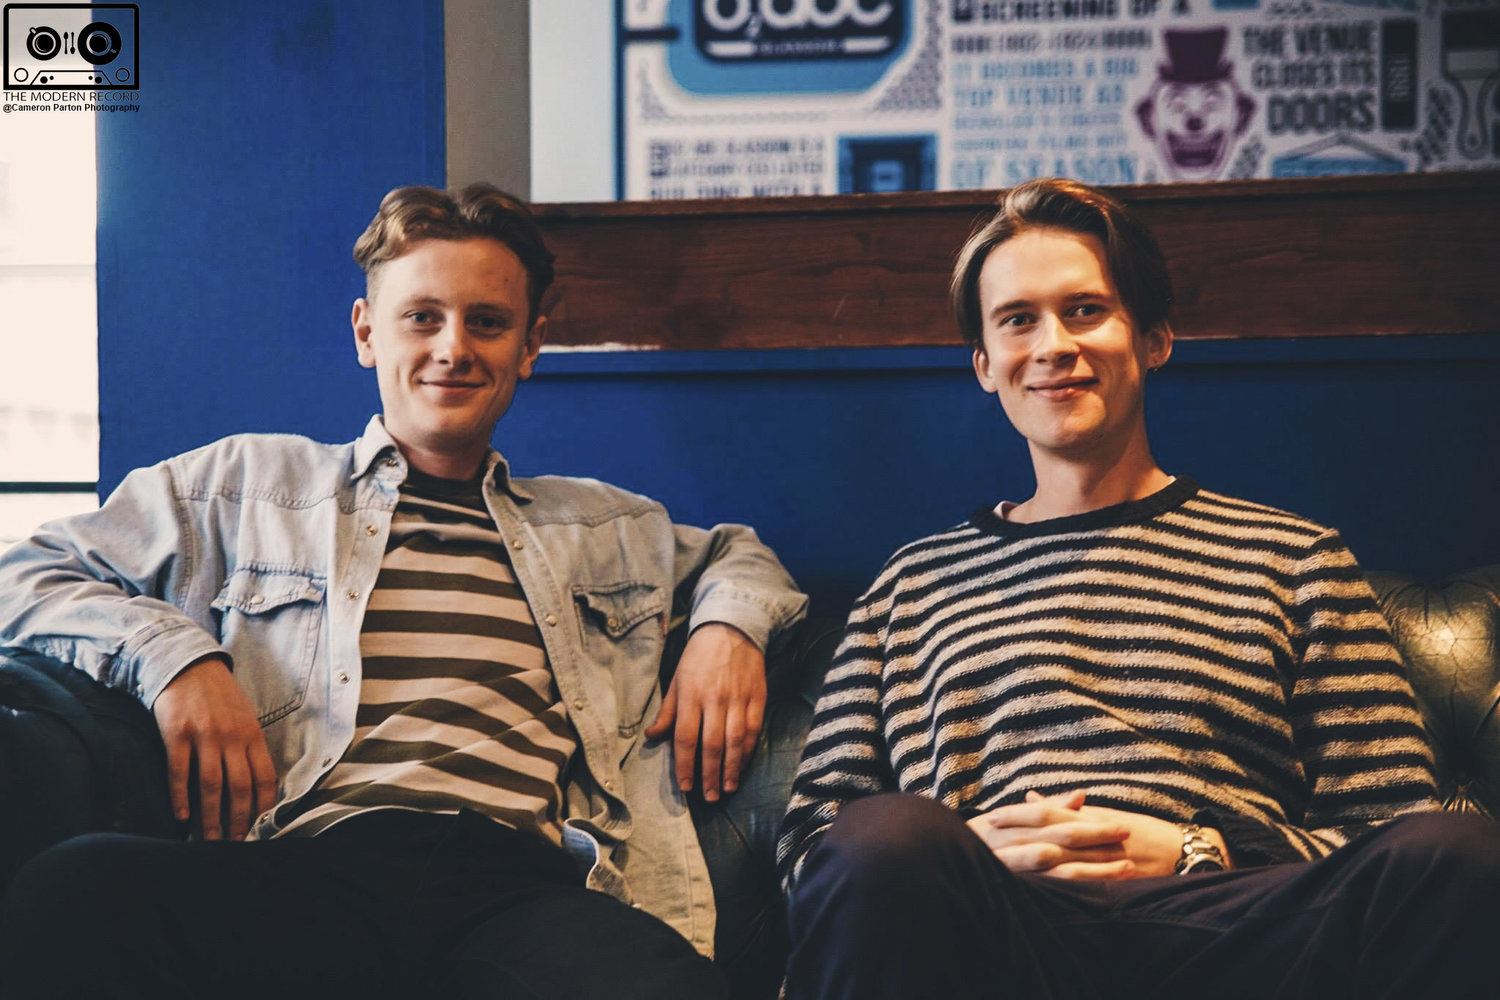 INTERVIEW WITH 'ROAM' AT GLASGOW'S O2 ABC // 27.09.2017  PICTURE BY : CAMERON PARTON PHOTOGRAPHY